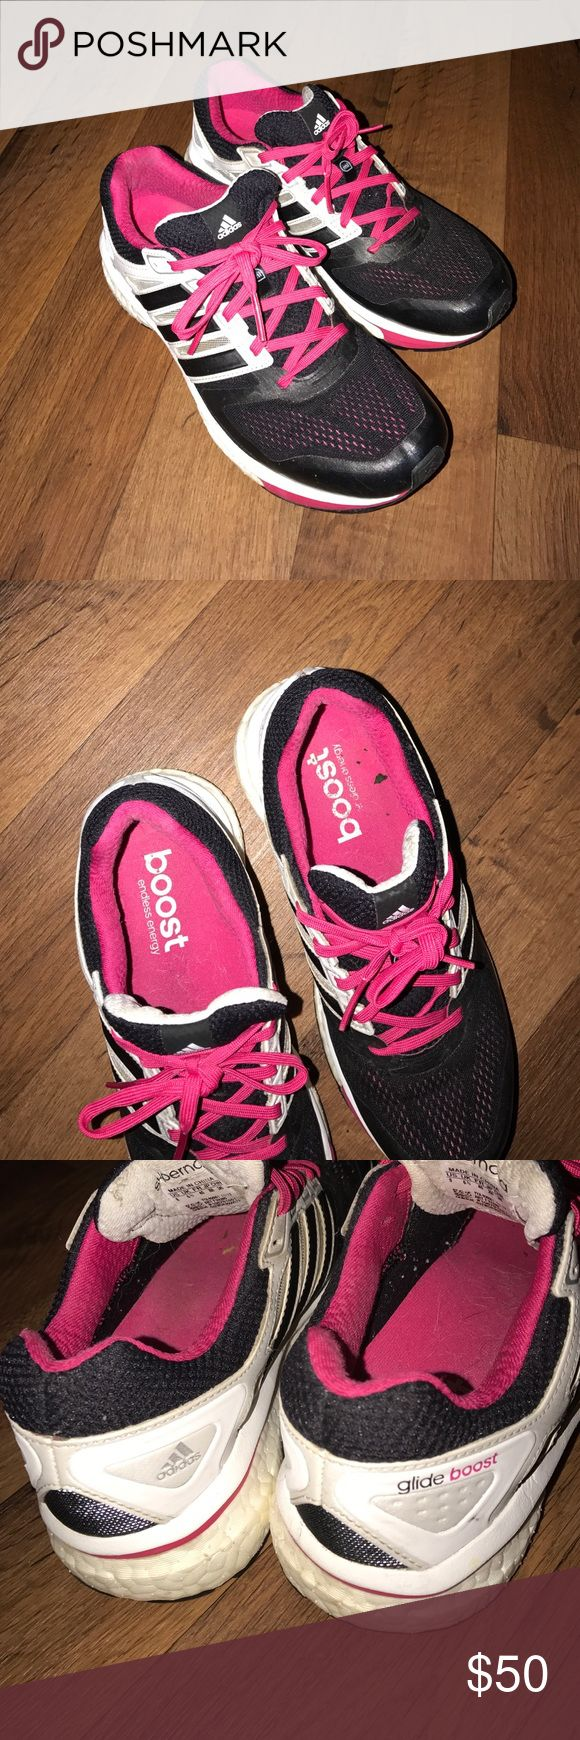 Size 8 Adidas Glide Boost Running Shoes Black Pink Excellent condition Adidas Shoes Athletic Shoes